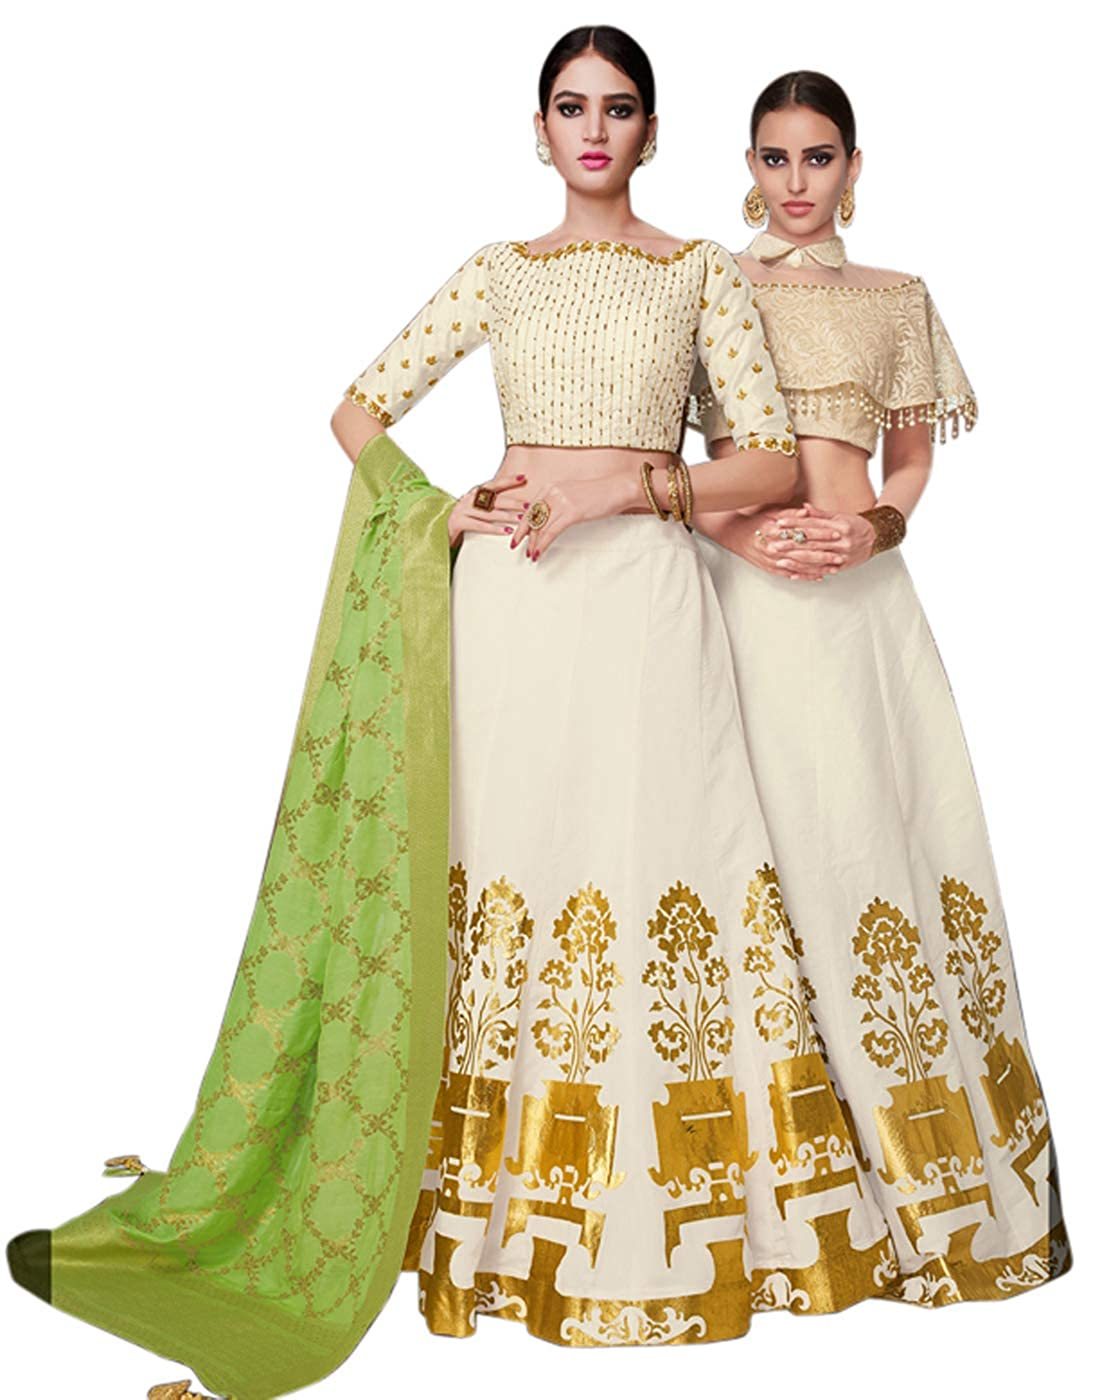 DesiButik's Wedding Wear Magnificent White Tussar Silk Lehenga With 2 Cholis and Dupatta